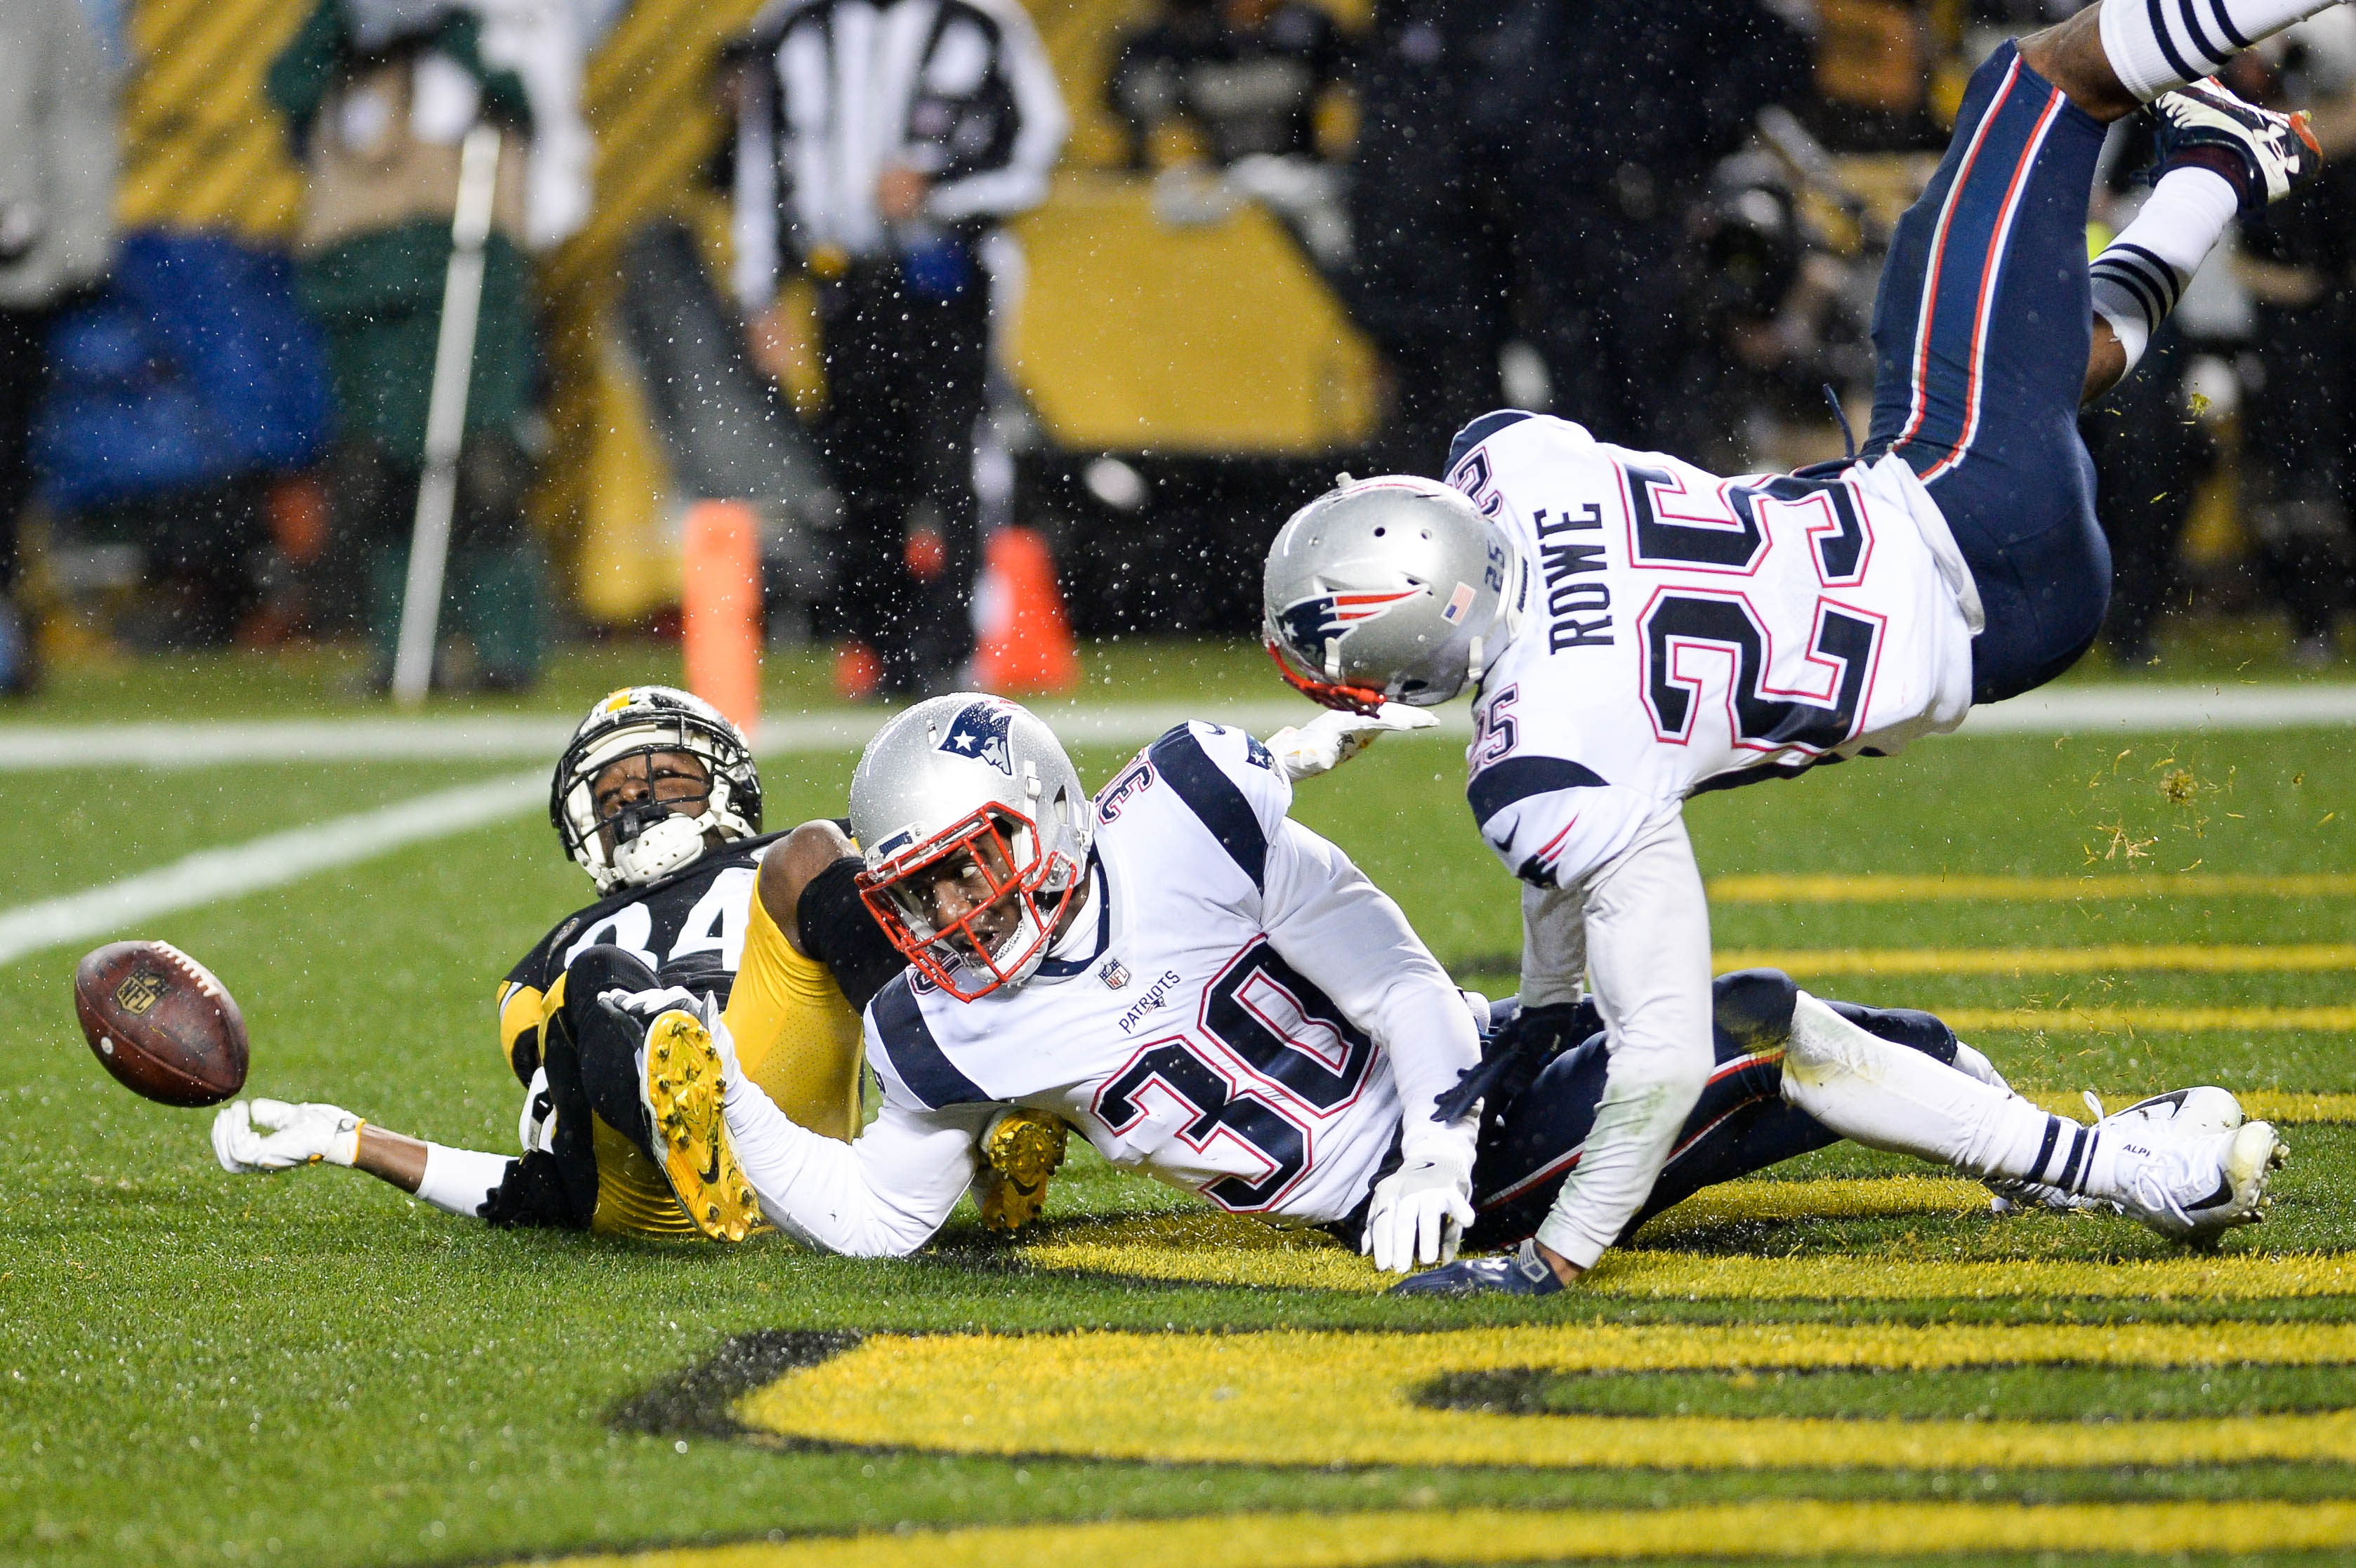 Patriots rally back in thrilling 27-24 win over Pittsburgh